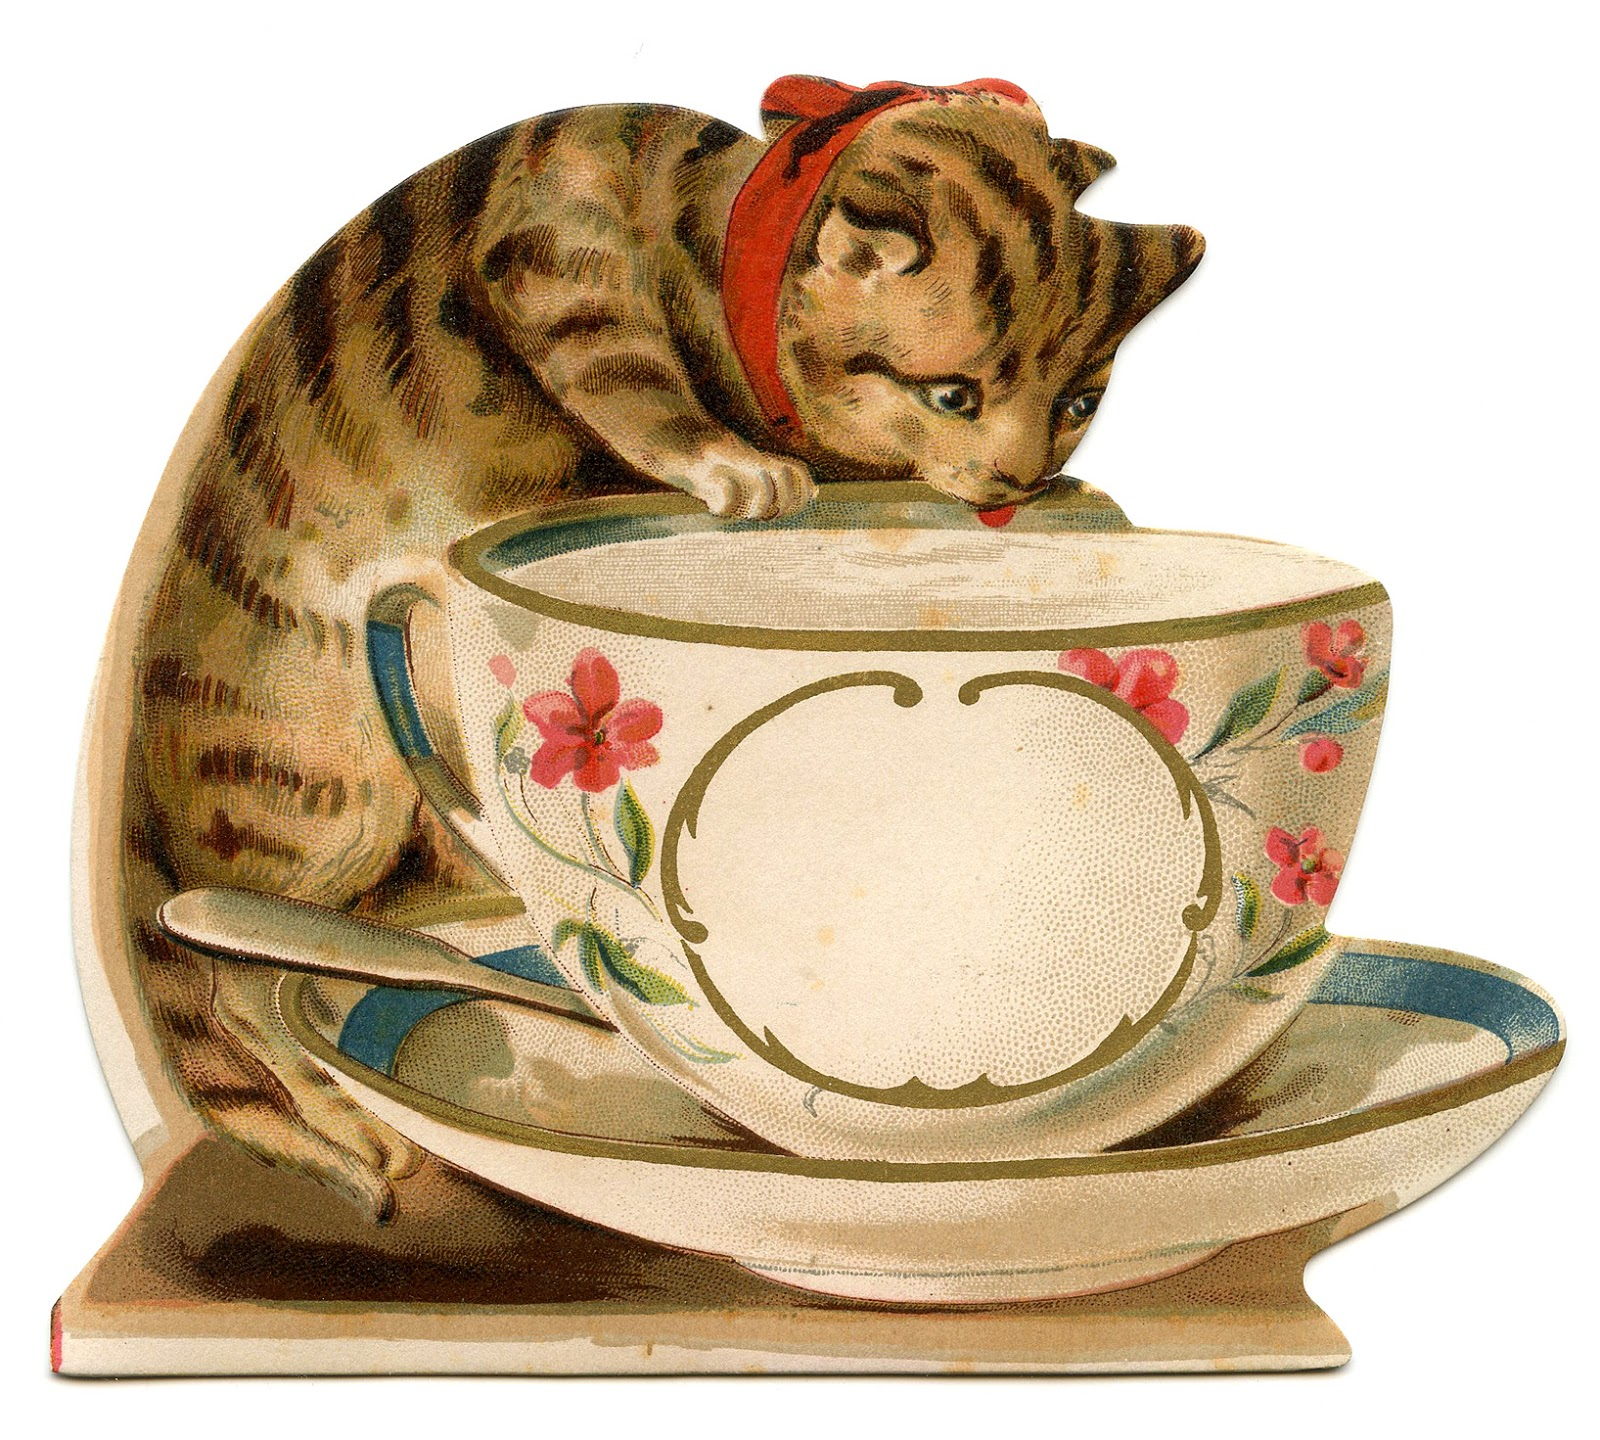 Vintage Image   Cat With Teacup   The Graphics Fairy